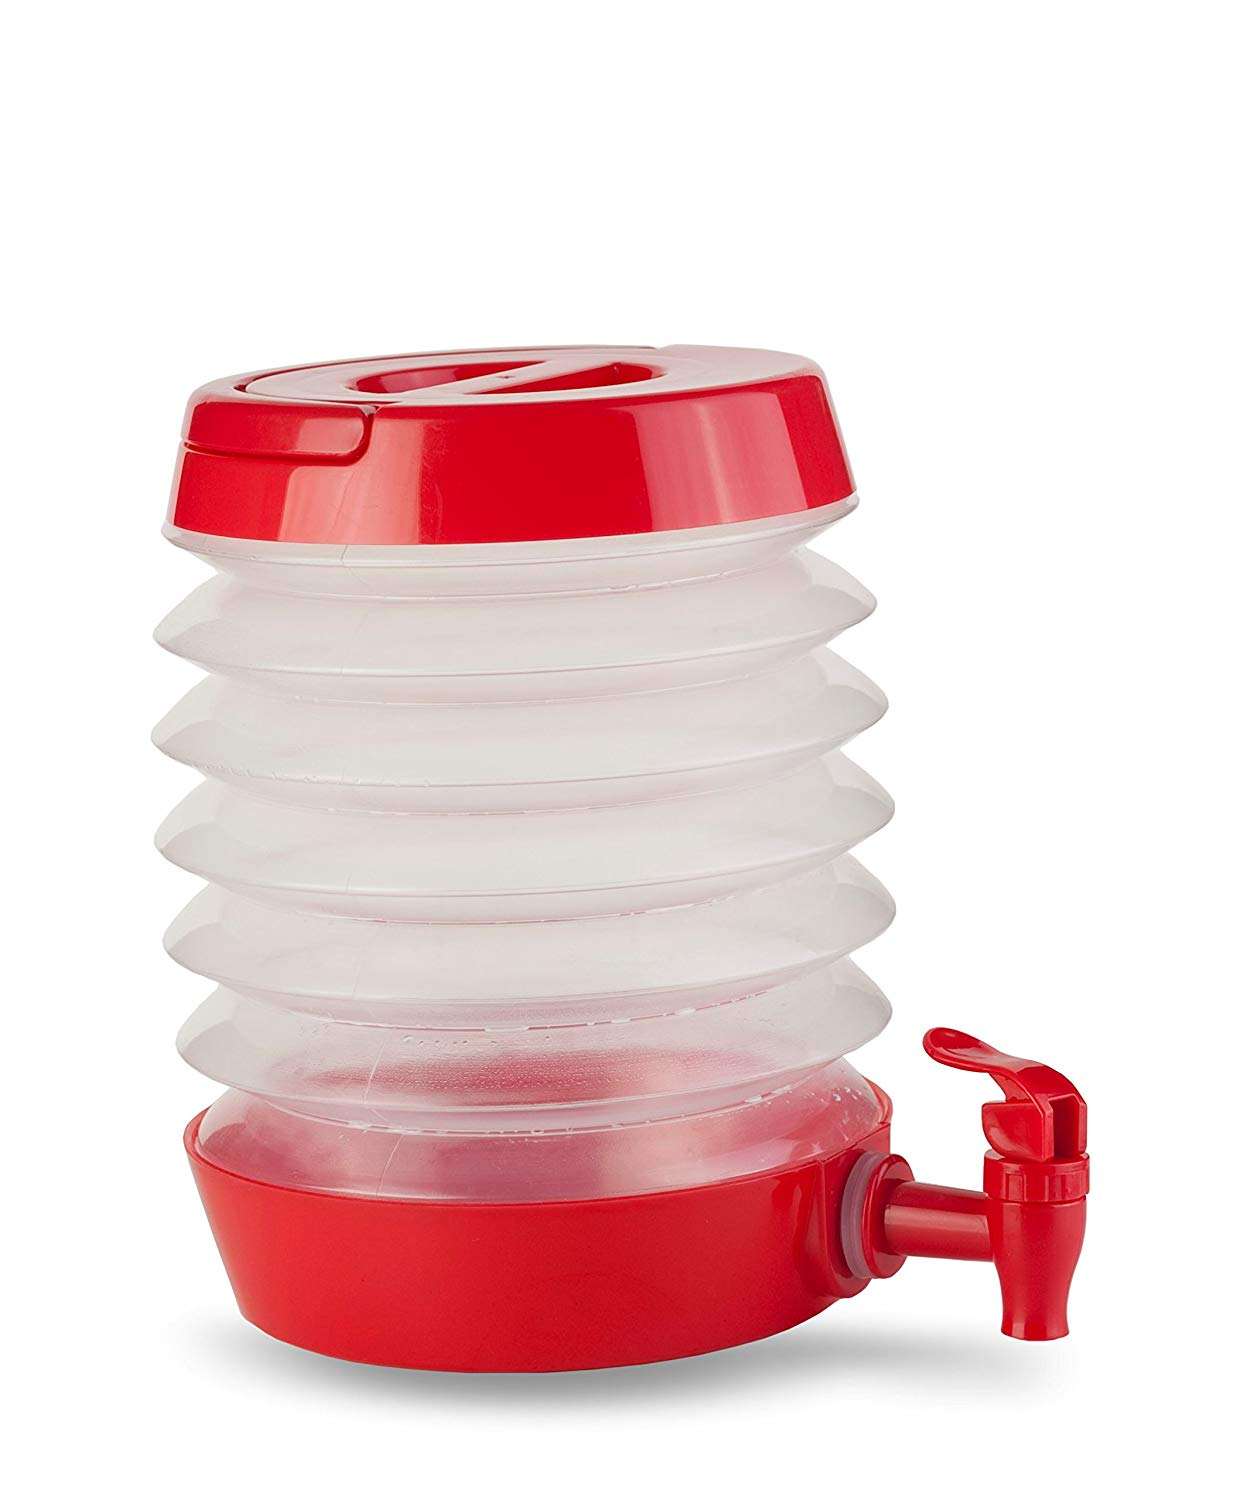 Collapsible Drink Dispenser for Beach Trips and Picnics